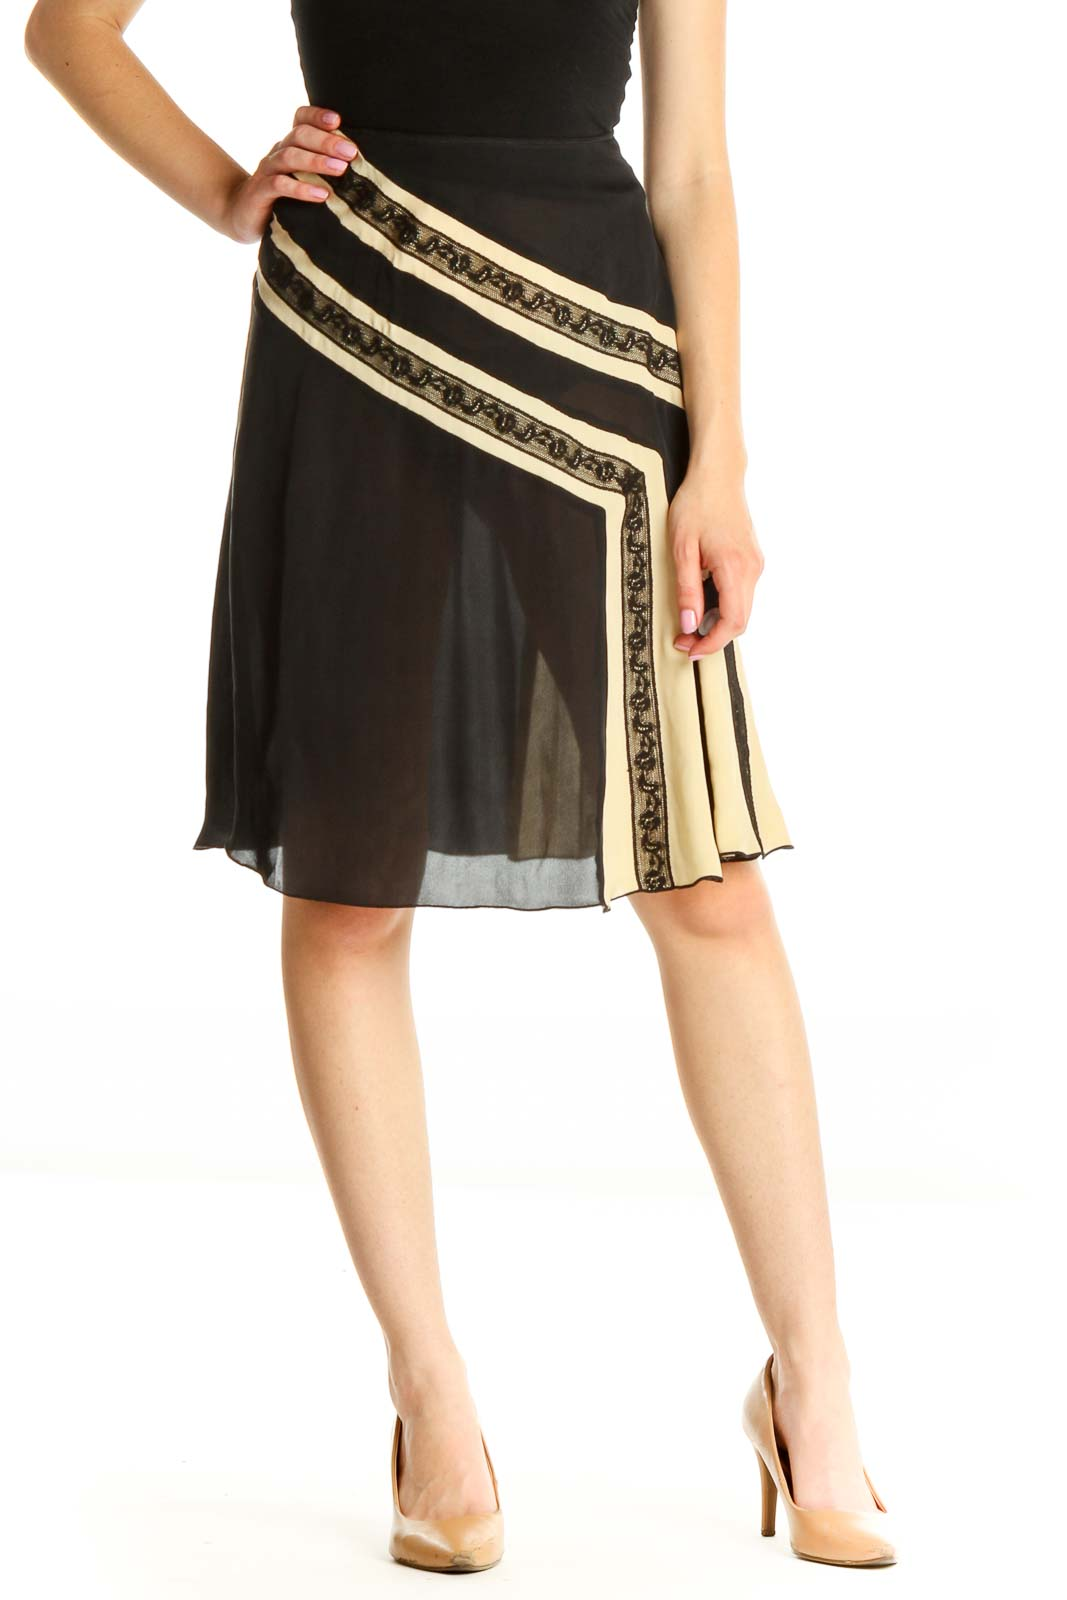 Black Colorblock Chic A-Line Skirt Front